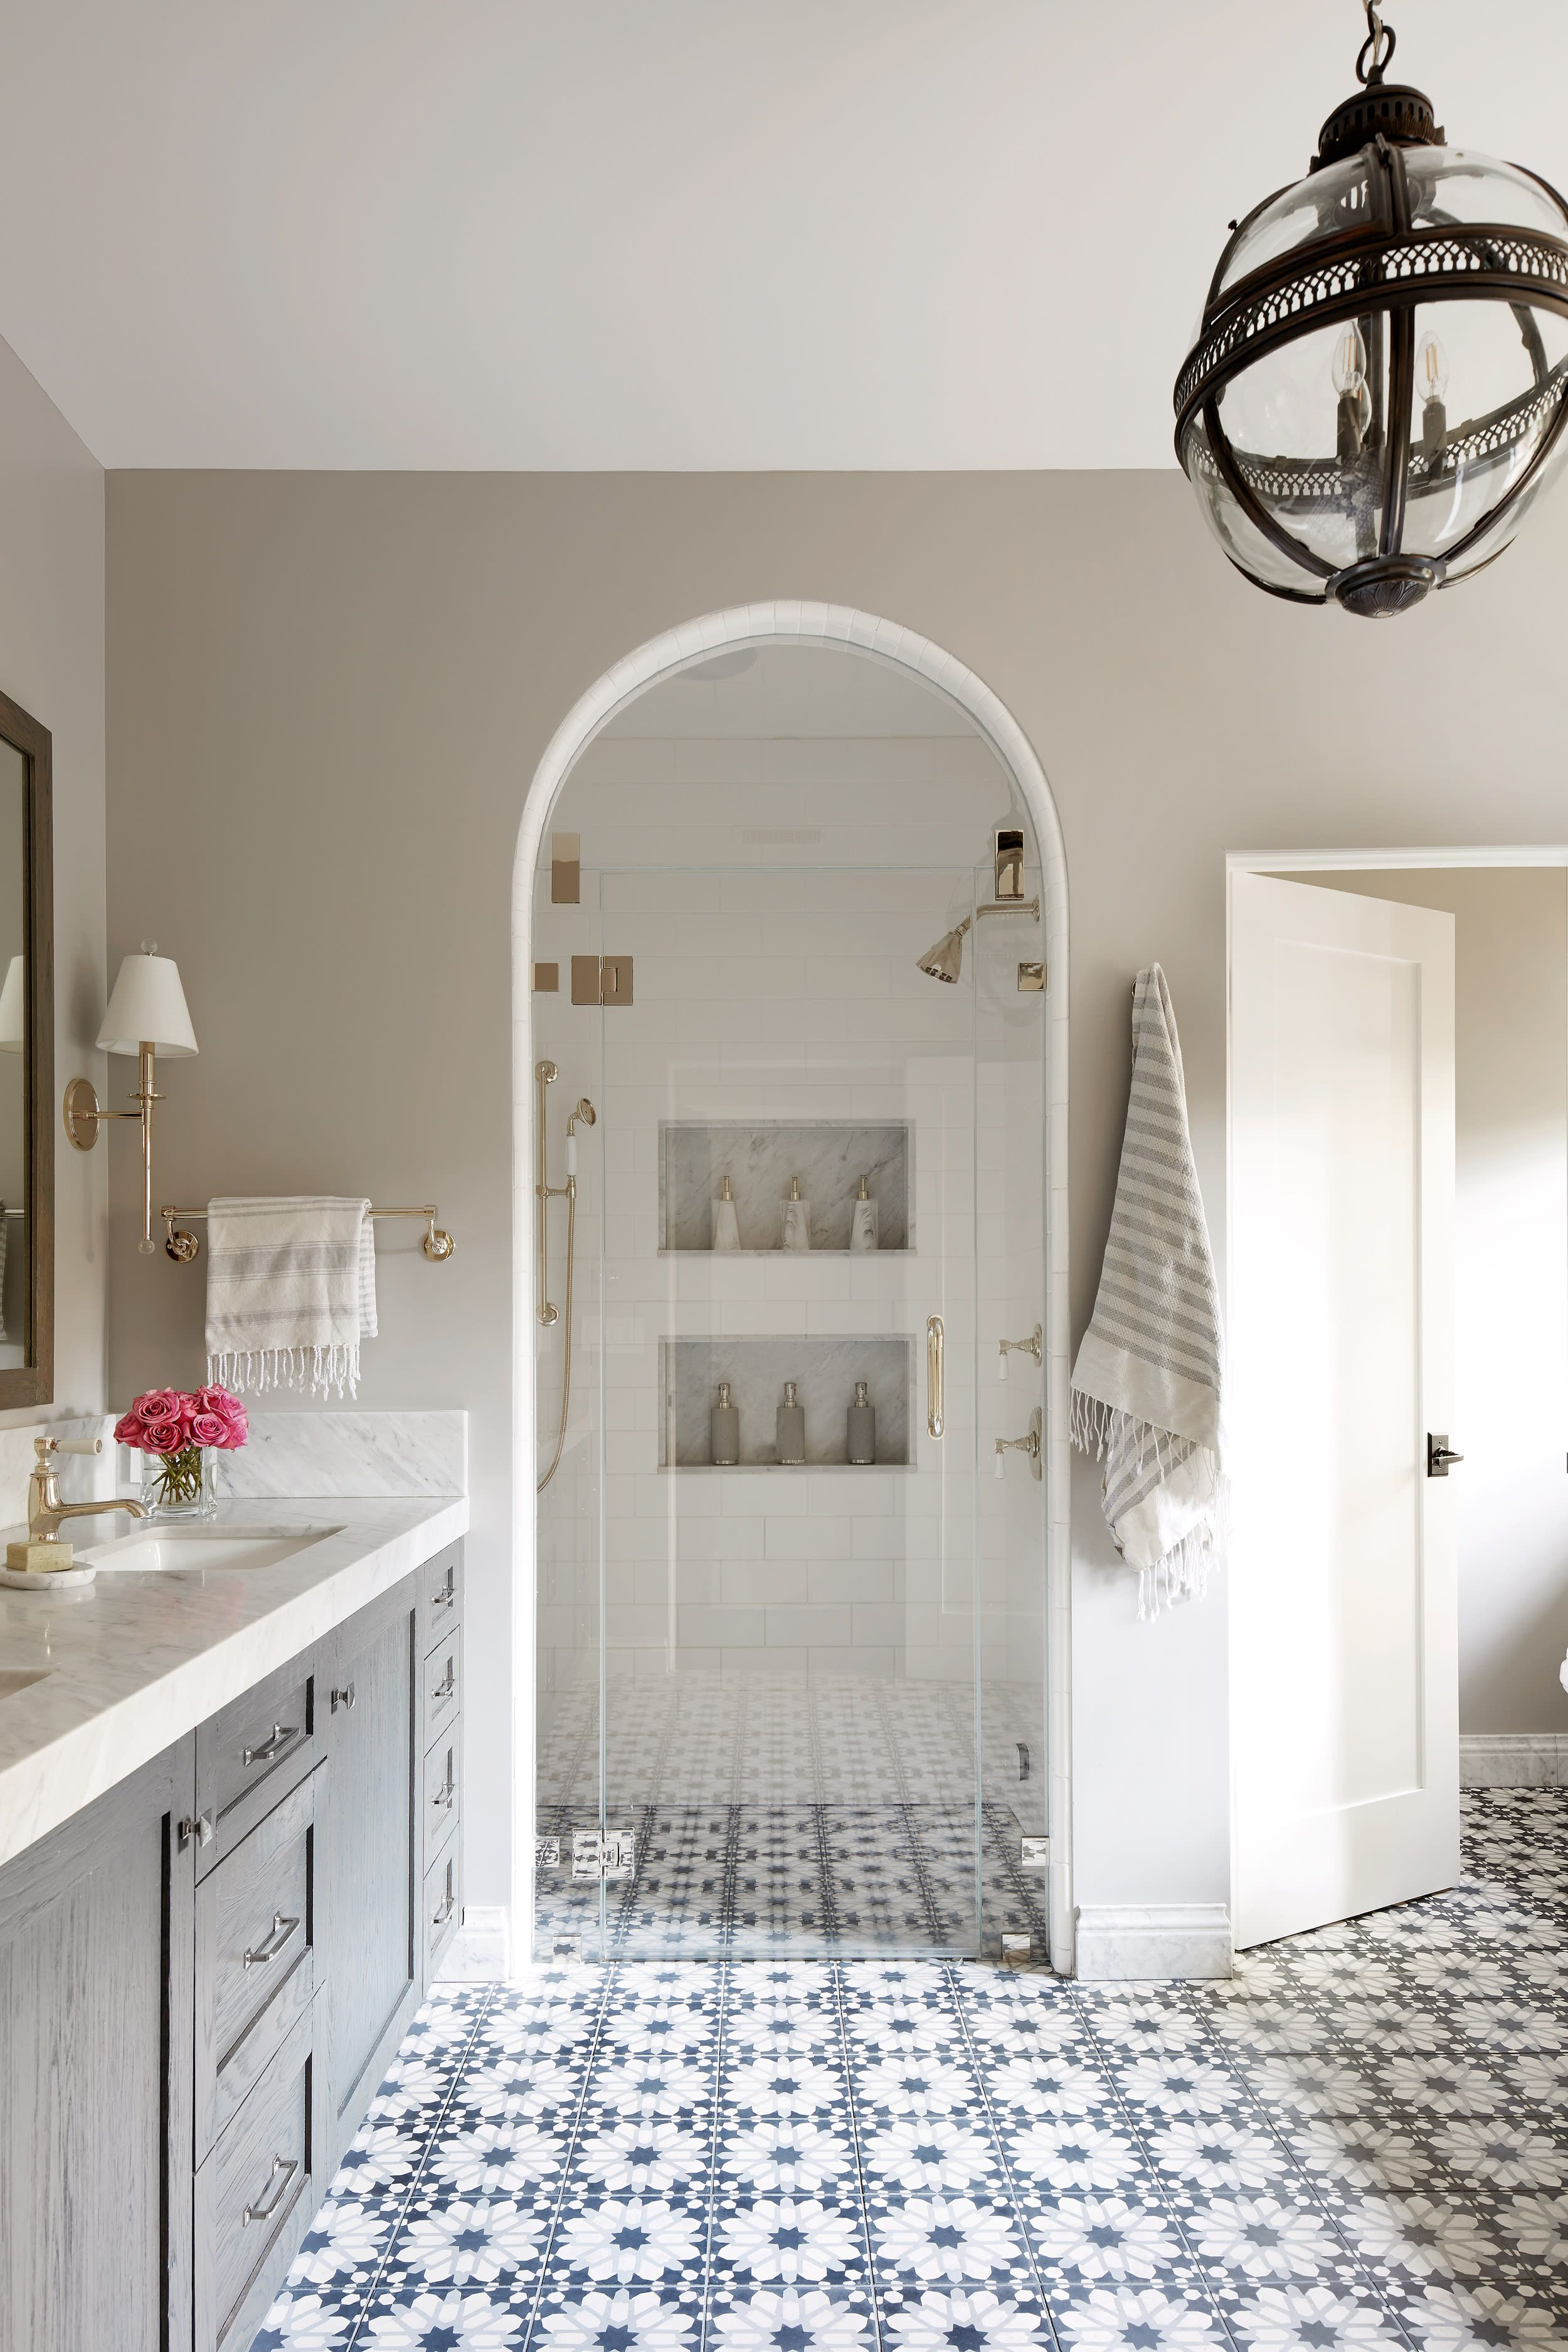 Tour A Spanish Inspired Home That S Filled With Character And Good Vibes Spanish Style Bathrooms Bathrooms Remodel Spanish Style Homes